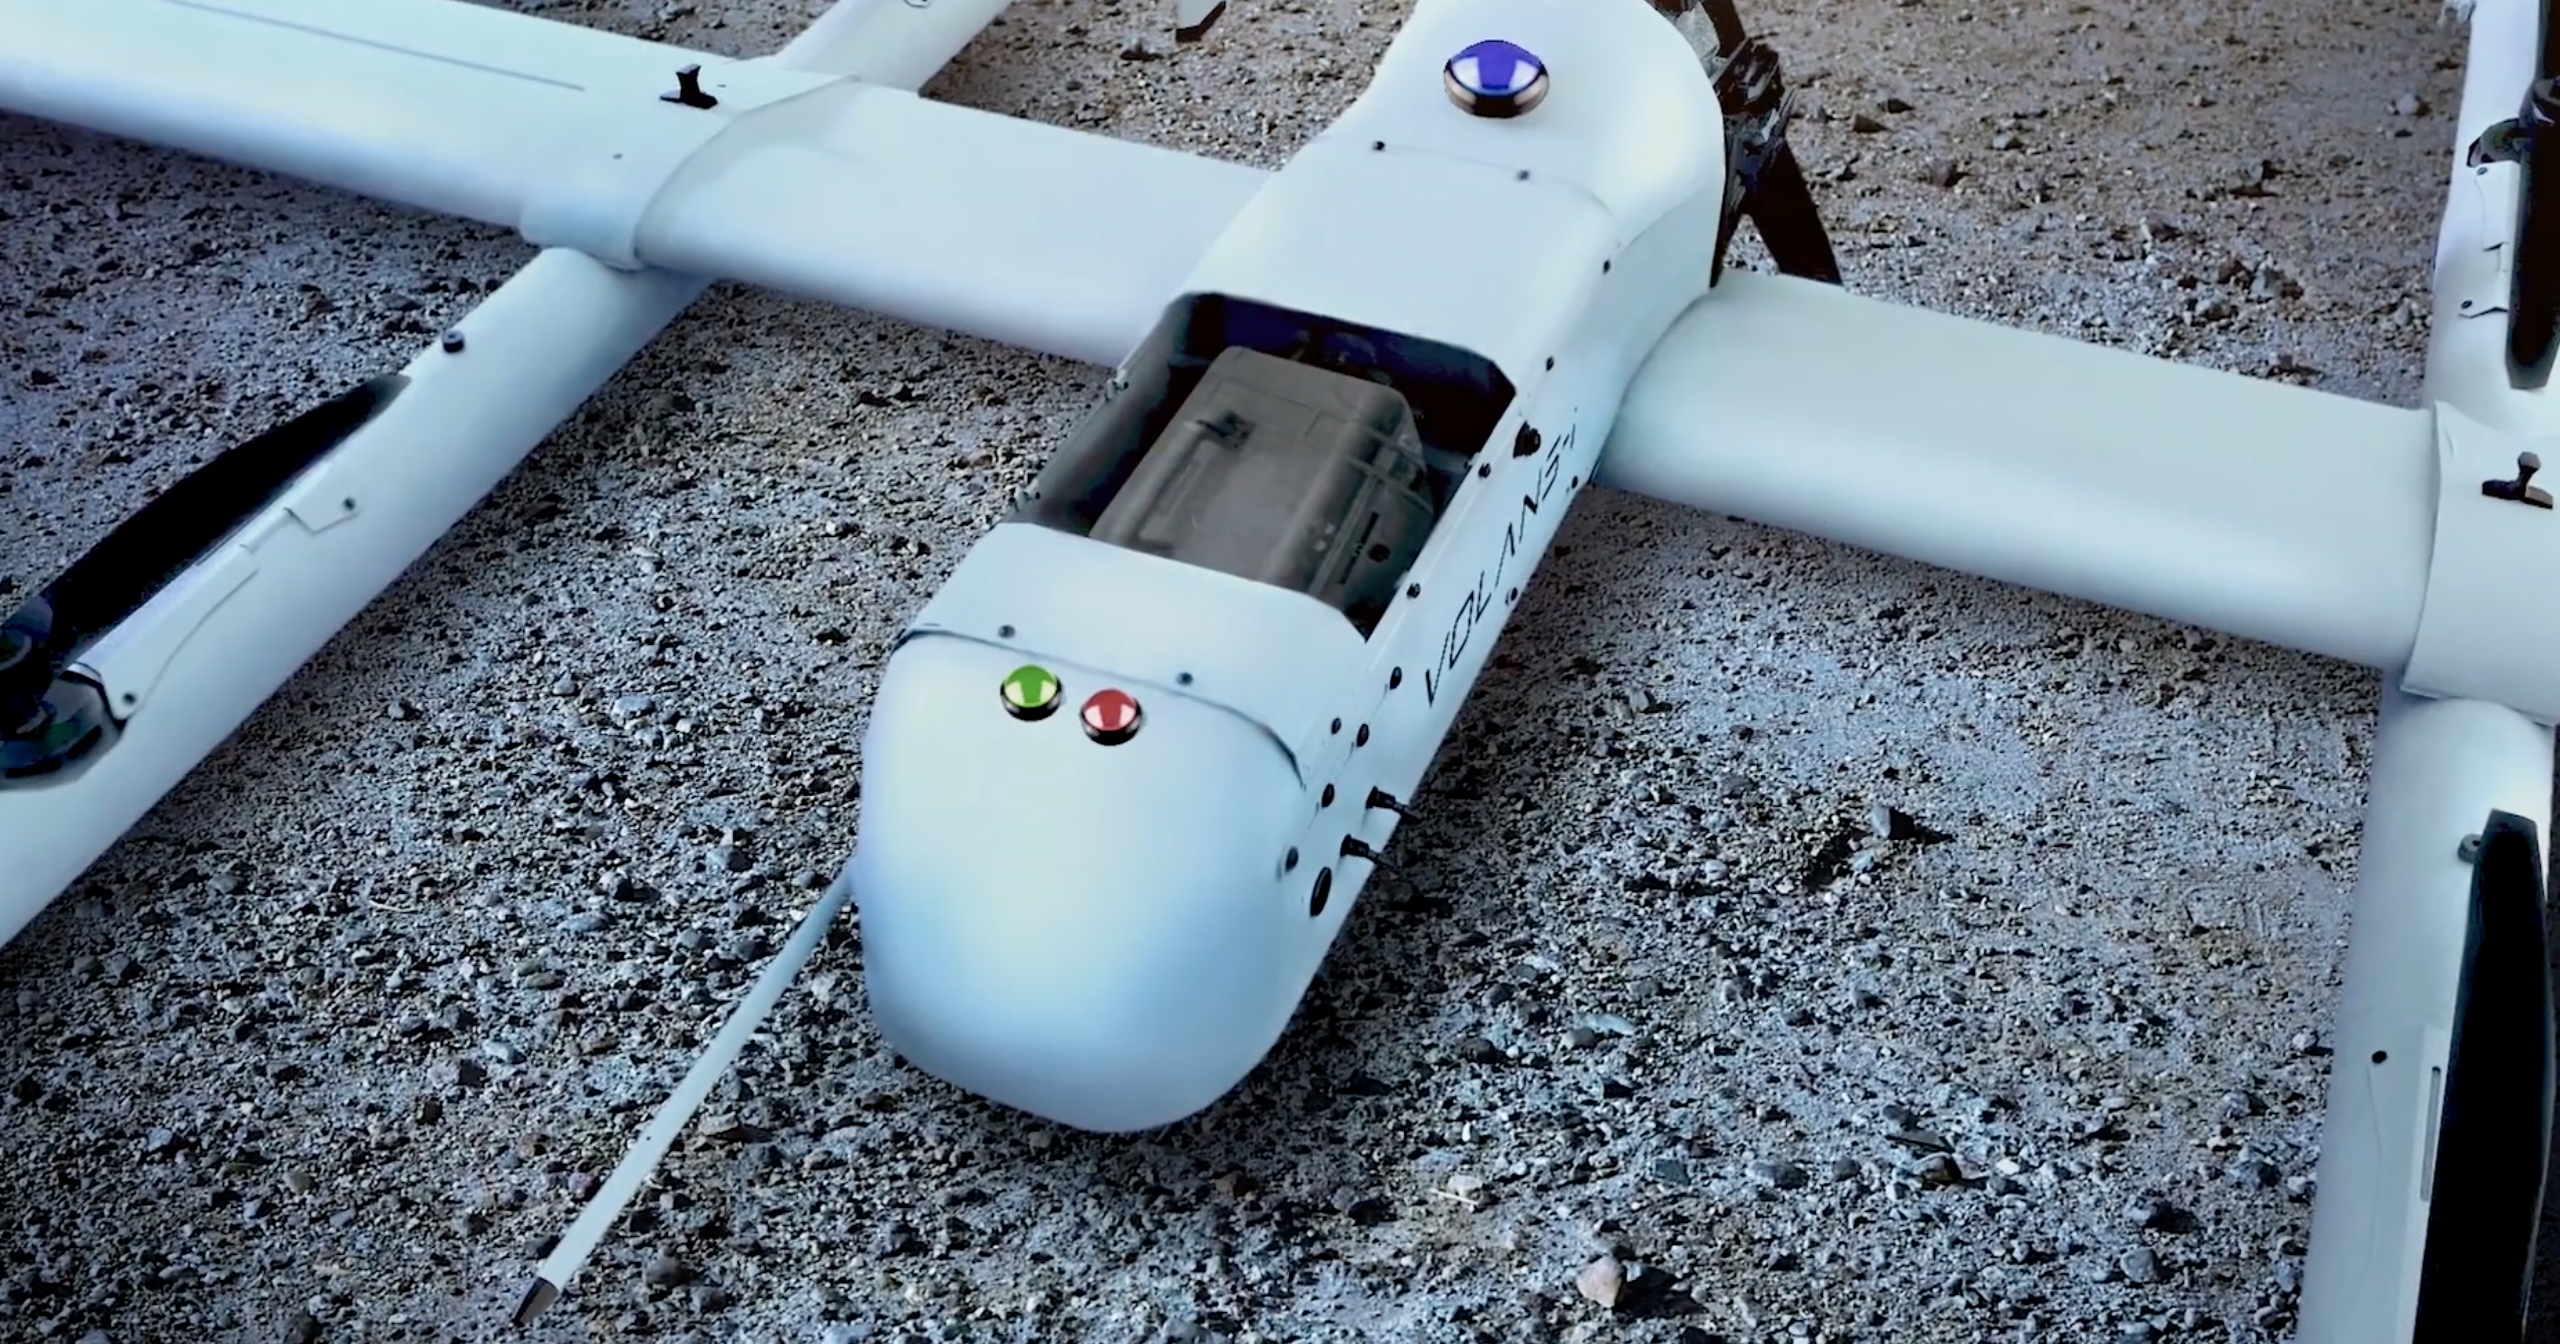 VOLANS-I Long Range Drone Delivery